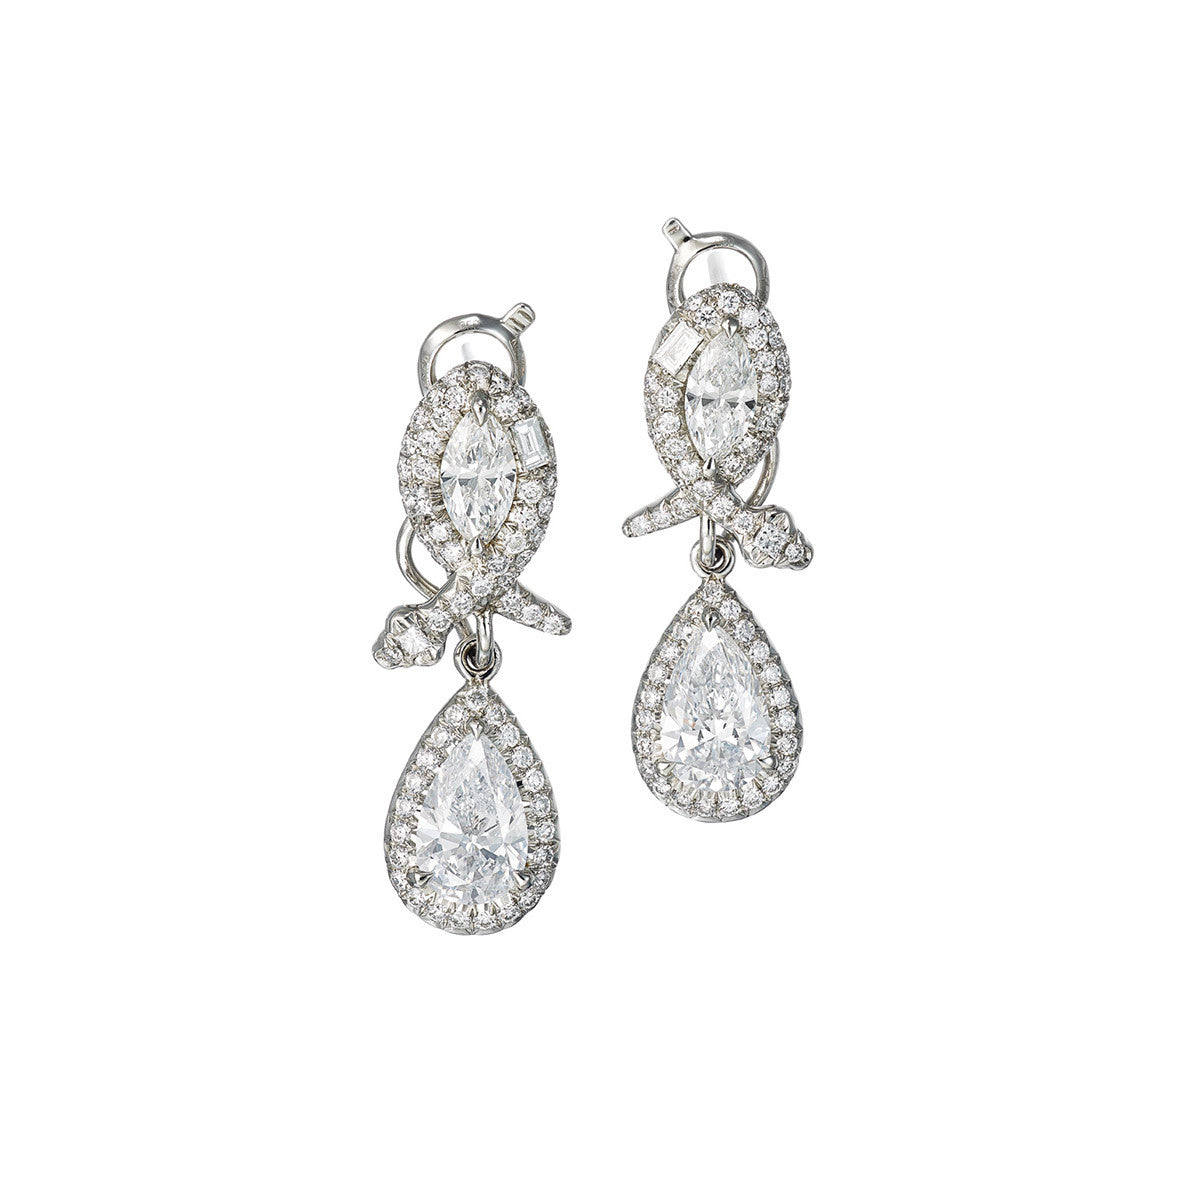 Earrings Platinum with White Diamonds 3.69Cts